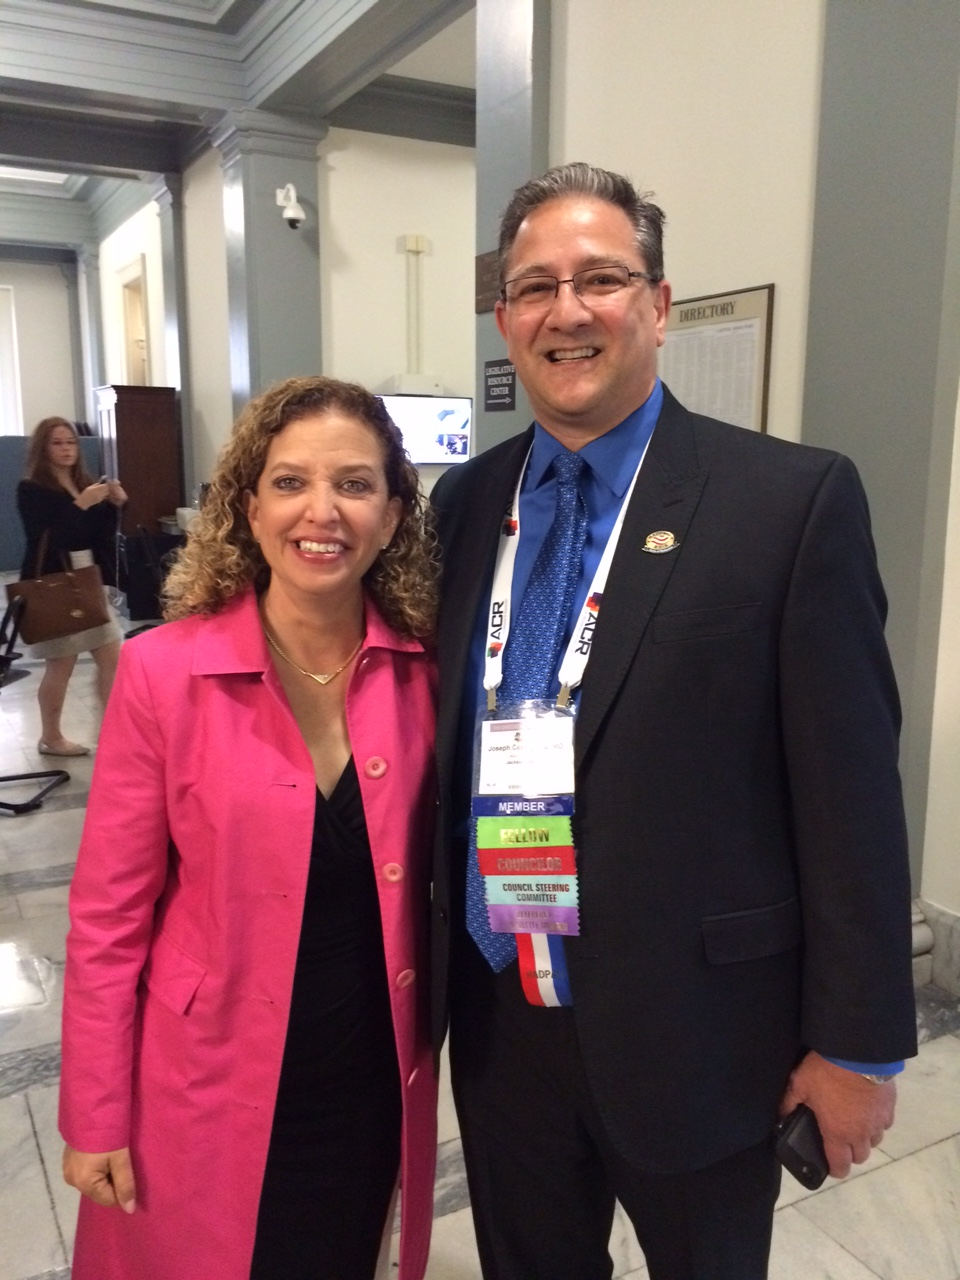 Congresswoman Wasserman Schultz and Dr. Cernigliaro